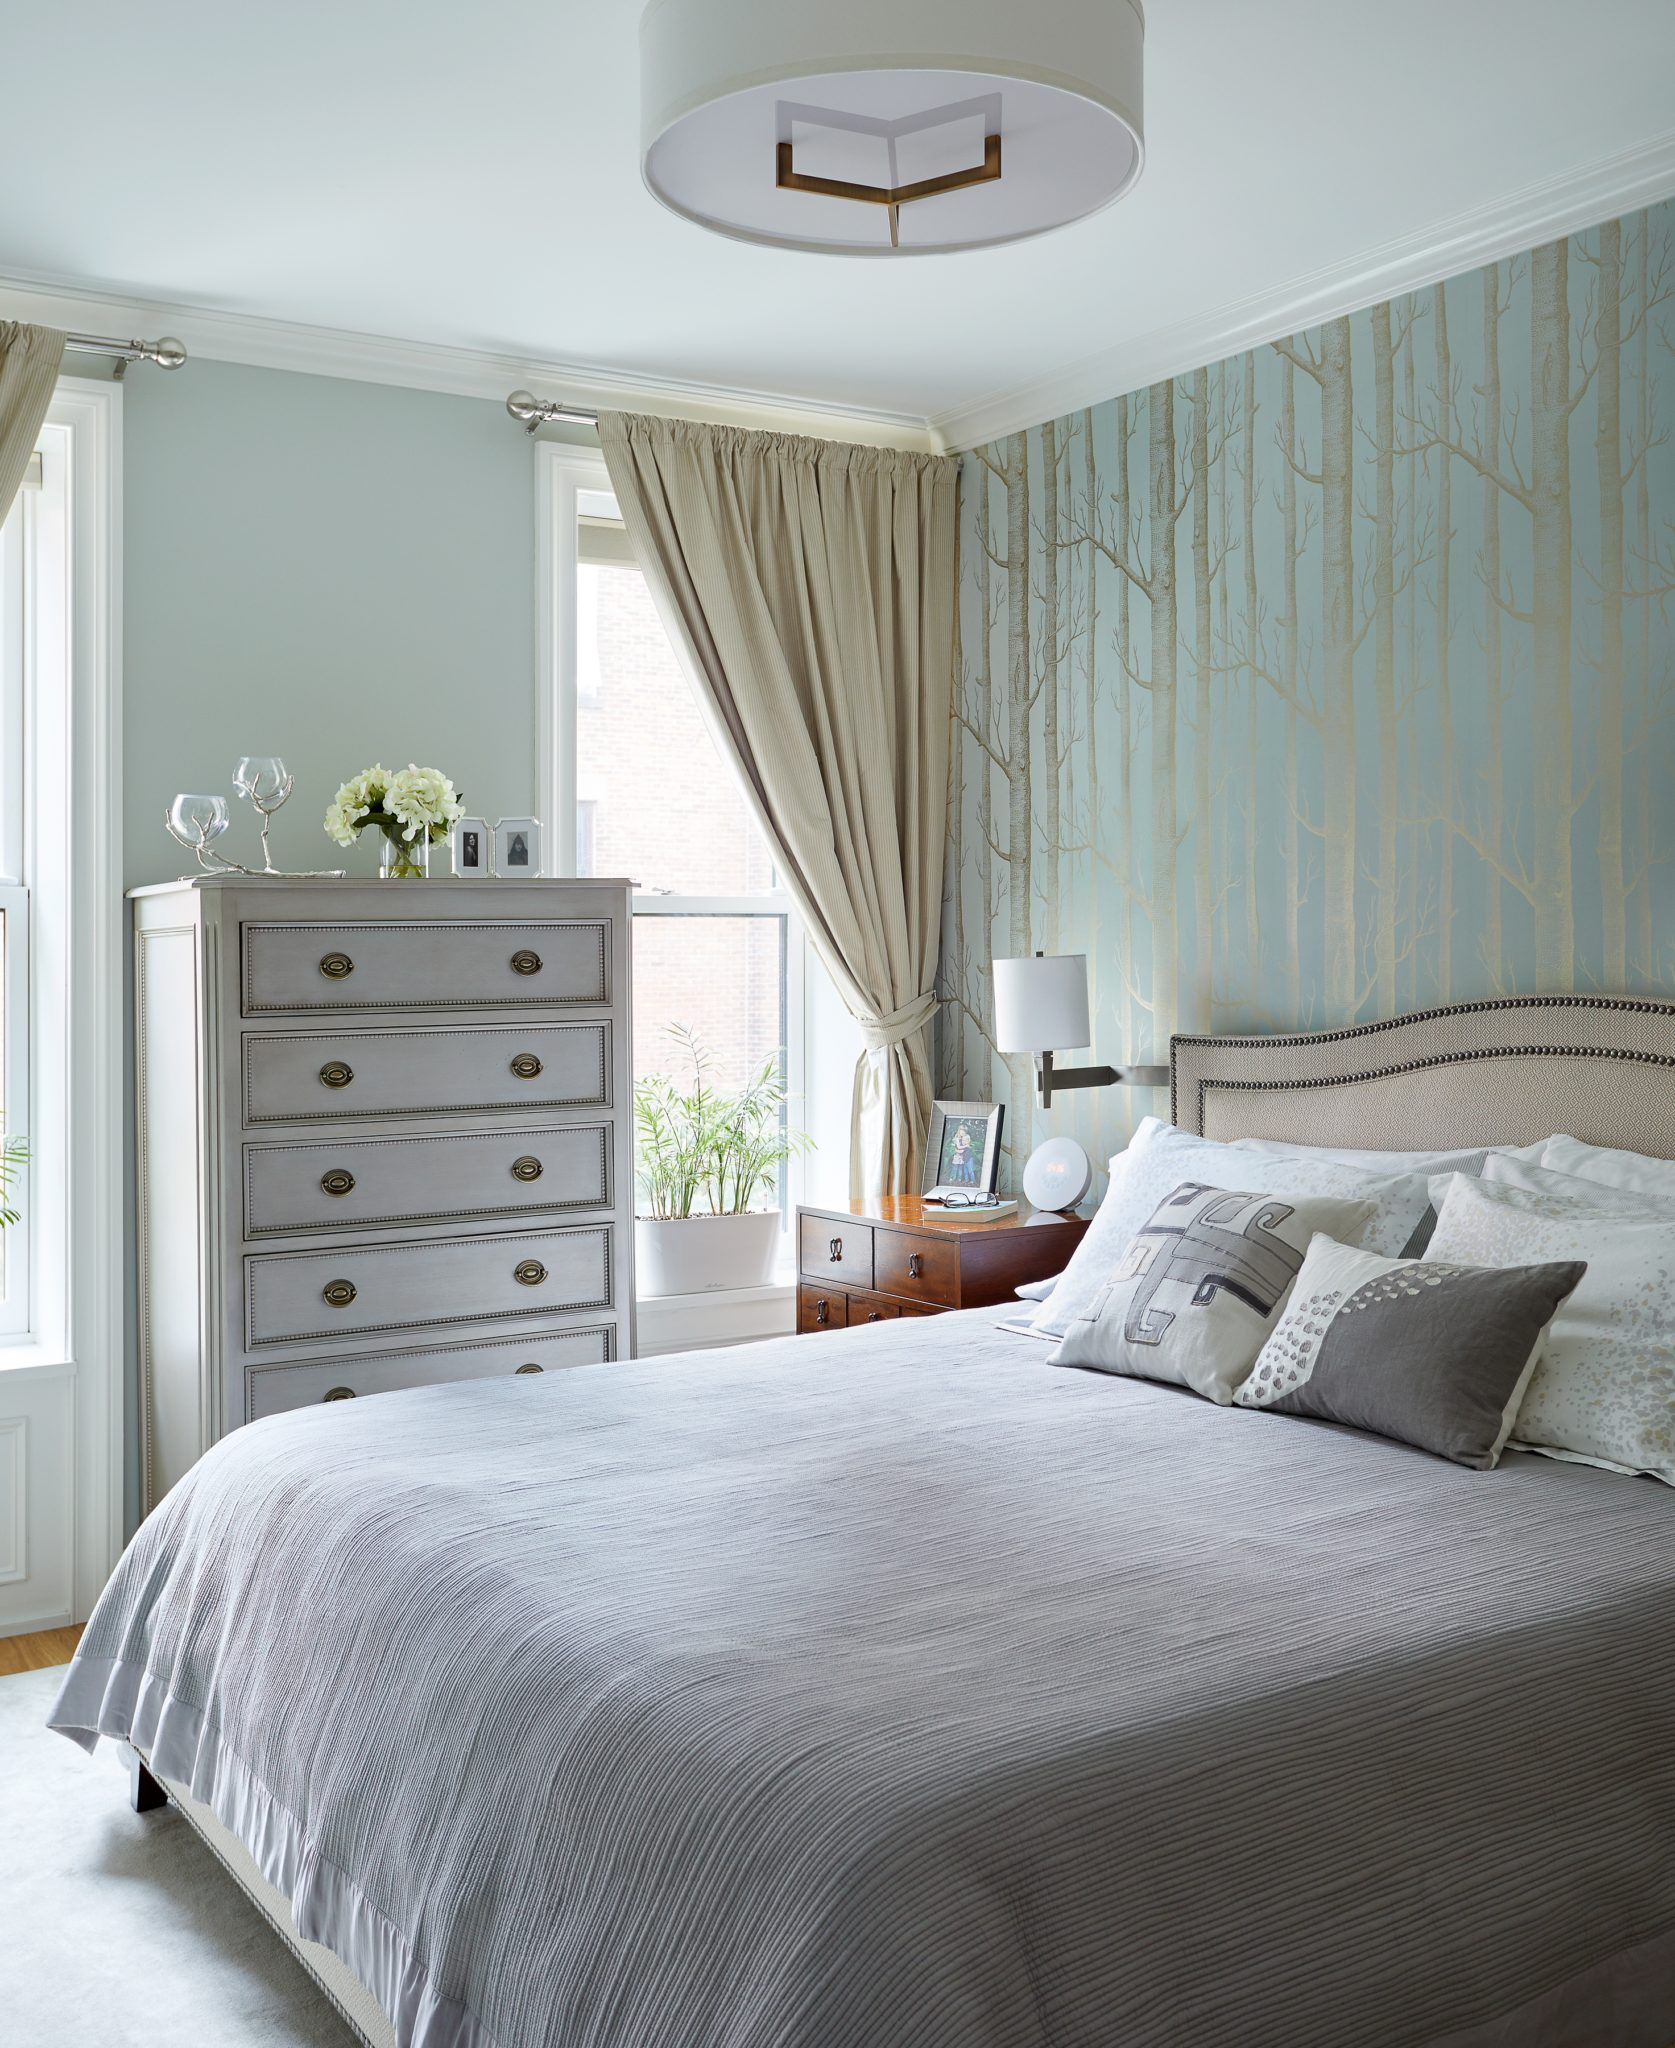 Master Bedroom in Neutral Tones with Woods Wallpaper Accent by Silverwing Interiors